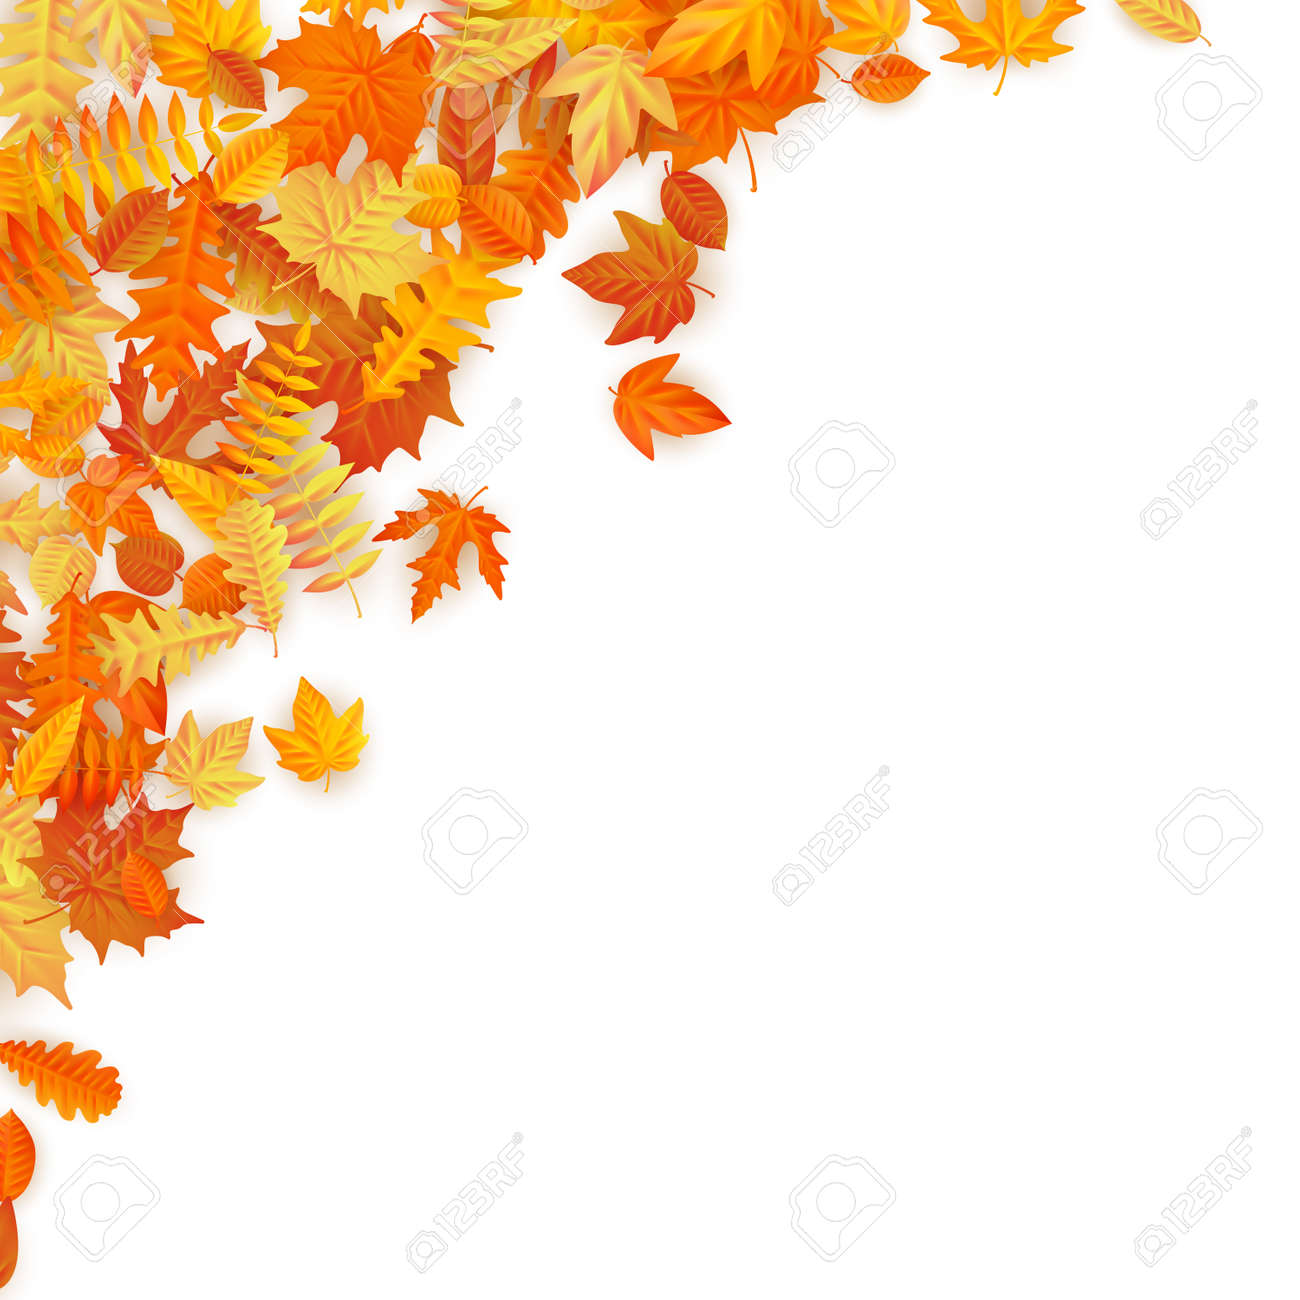 Frame with red, orange, brown and yellow falling autumn leaves. EPS 10 vector file - 126108163